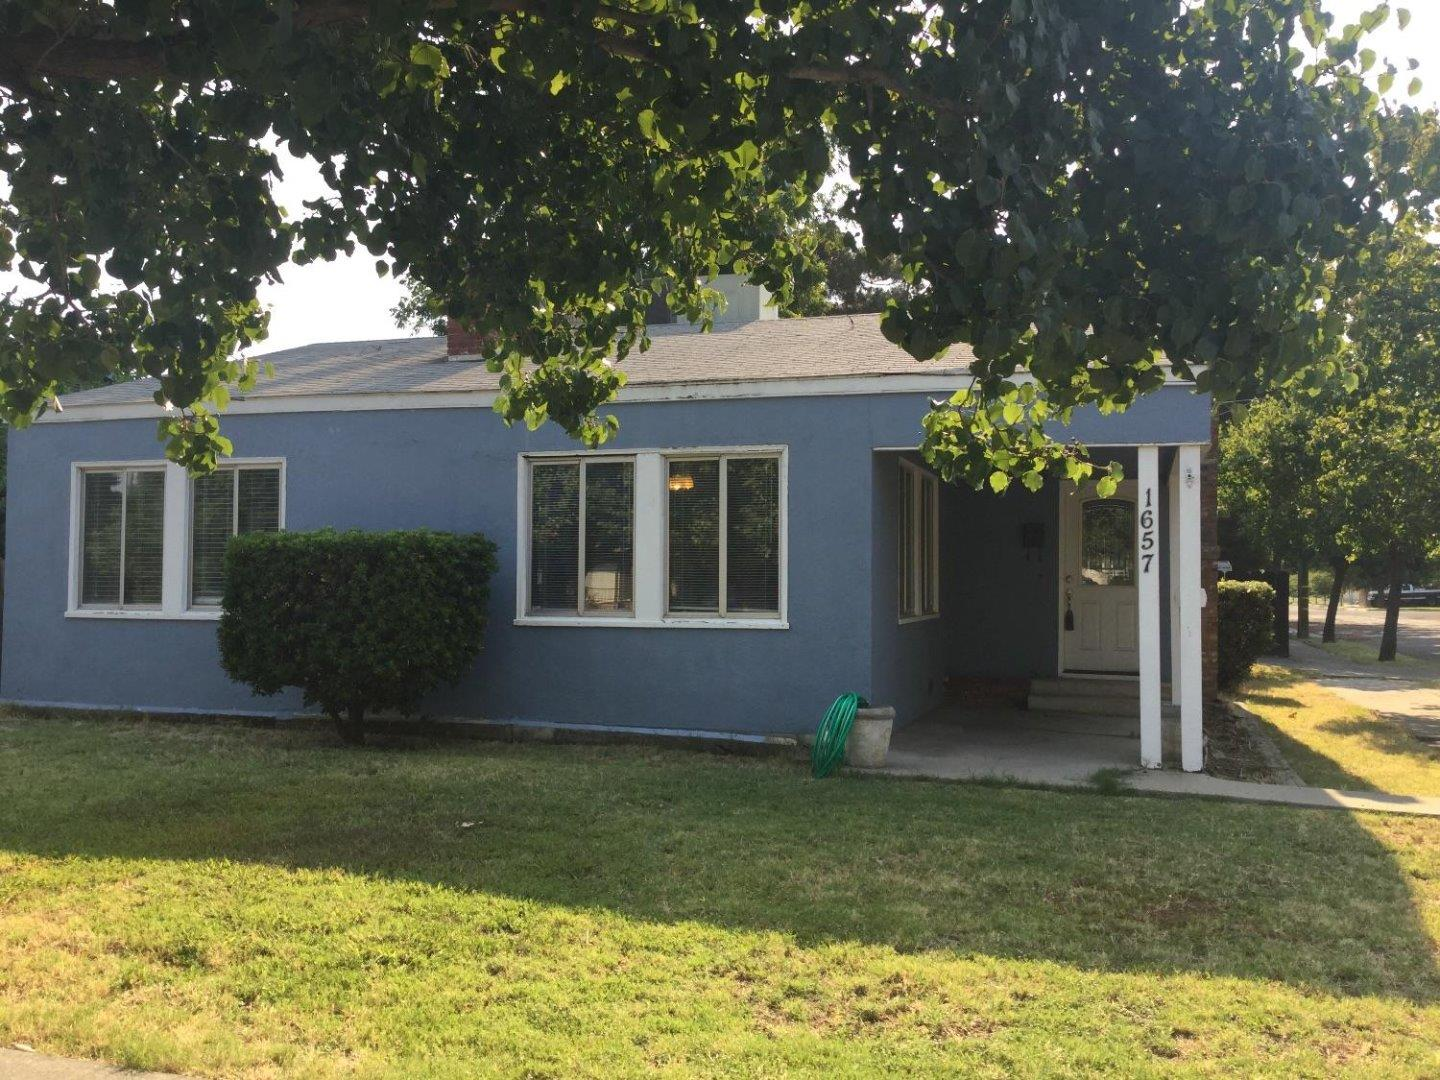 Single Family Home for Sale at 1657 Golden Gate Avenue 1657 Golden Gate Avenue Dos Palos, California 93620 United States